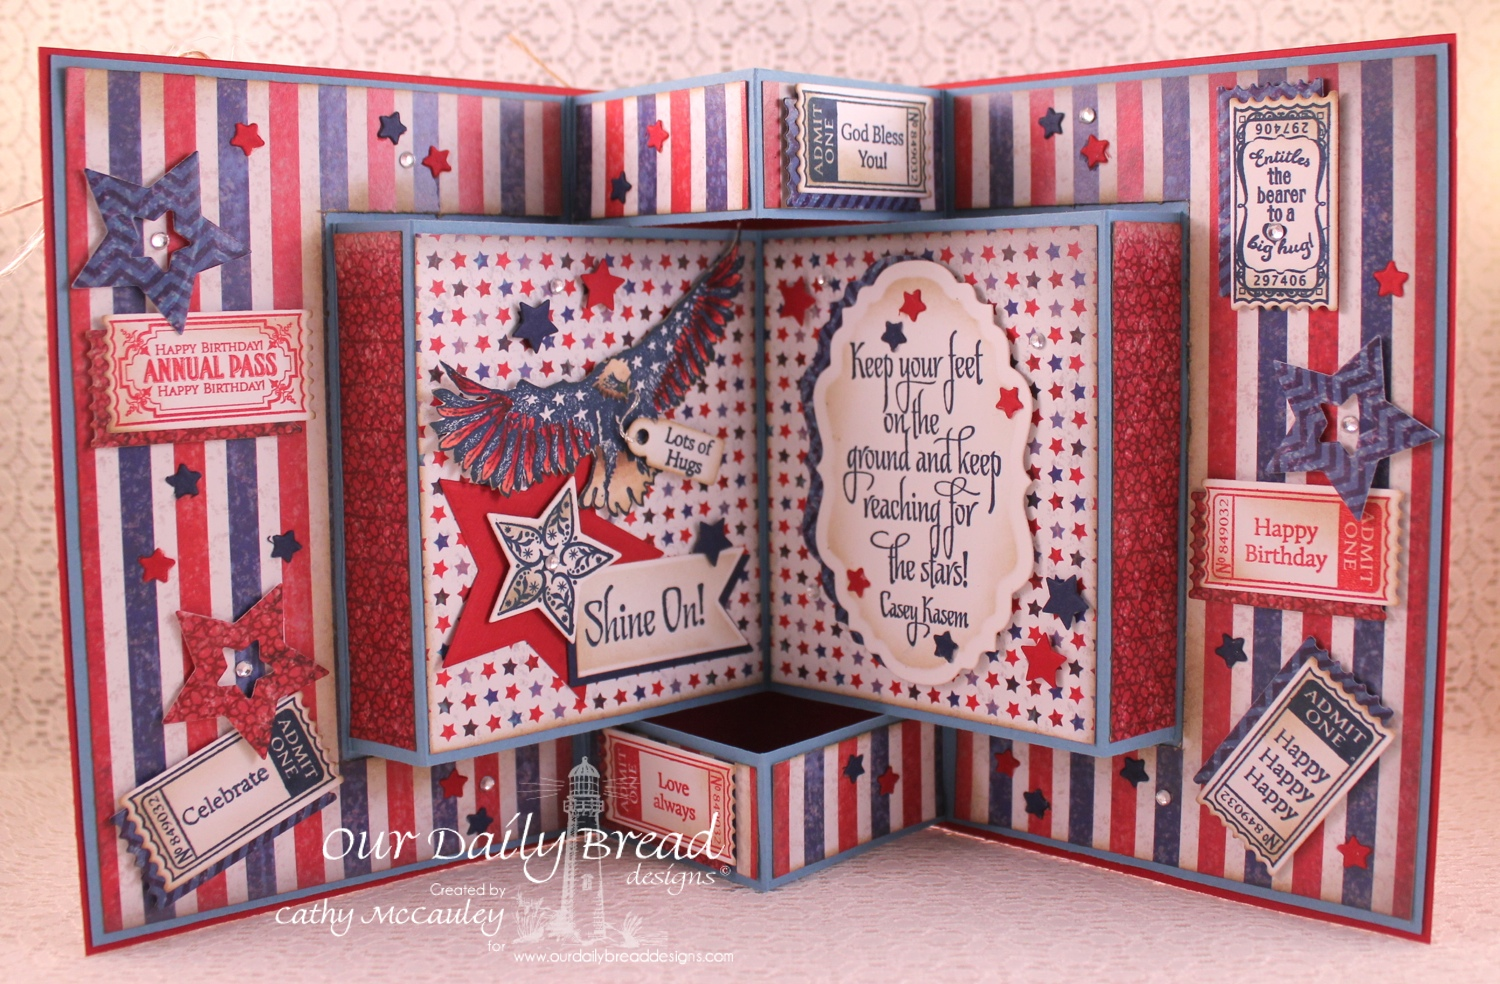 Stamps - Our Daily Bread Designs Shine On, Reach for the Stars, Some Gave All, Admit One, Admit Three, Mini Tag Sentiments, ODBD Patriotic Paper Collection, ODBD Custom Shining Stars Dies, ODBD Custom Pennants Die, ODBD Custom Pennant Row Die, ODBD Custom Mini Tags Dies